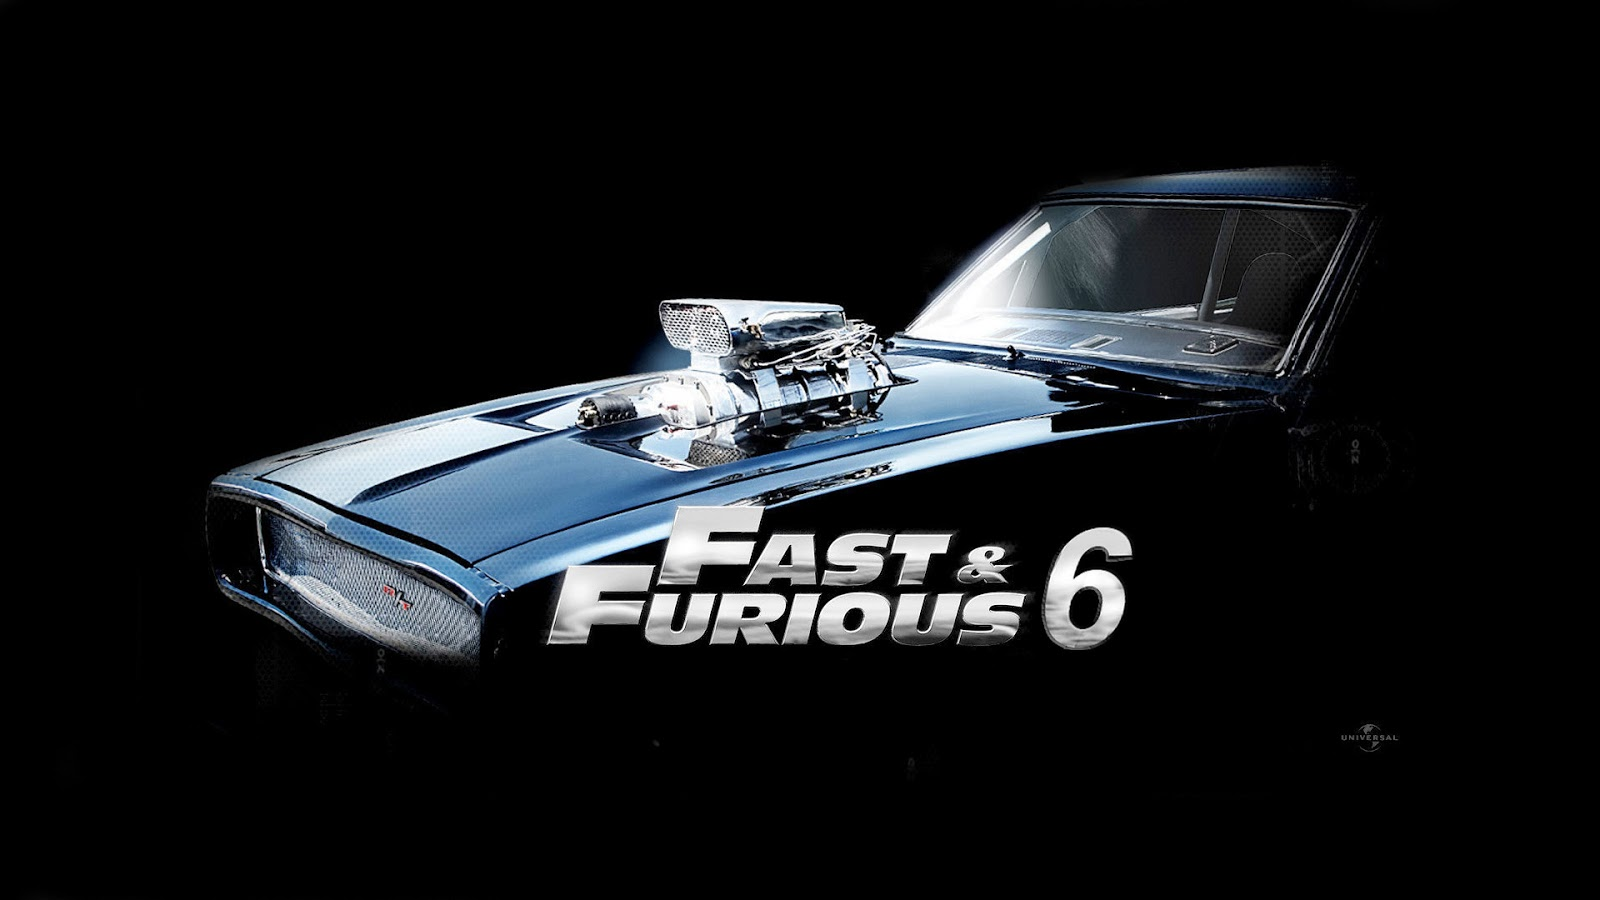 Fast And The Furious 7 Wallpaper: Furious 7 HD Wallpapers